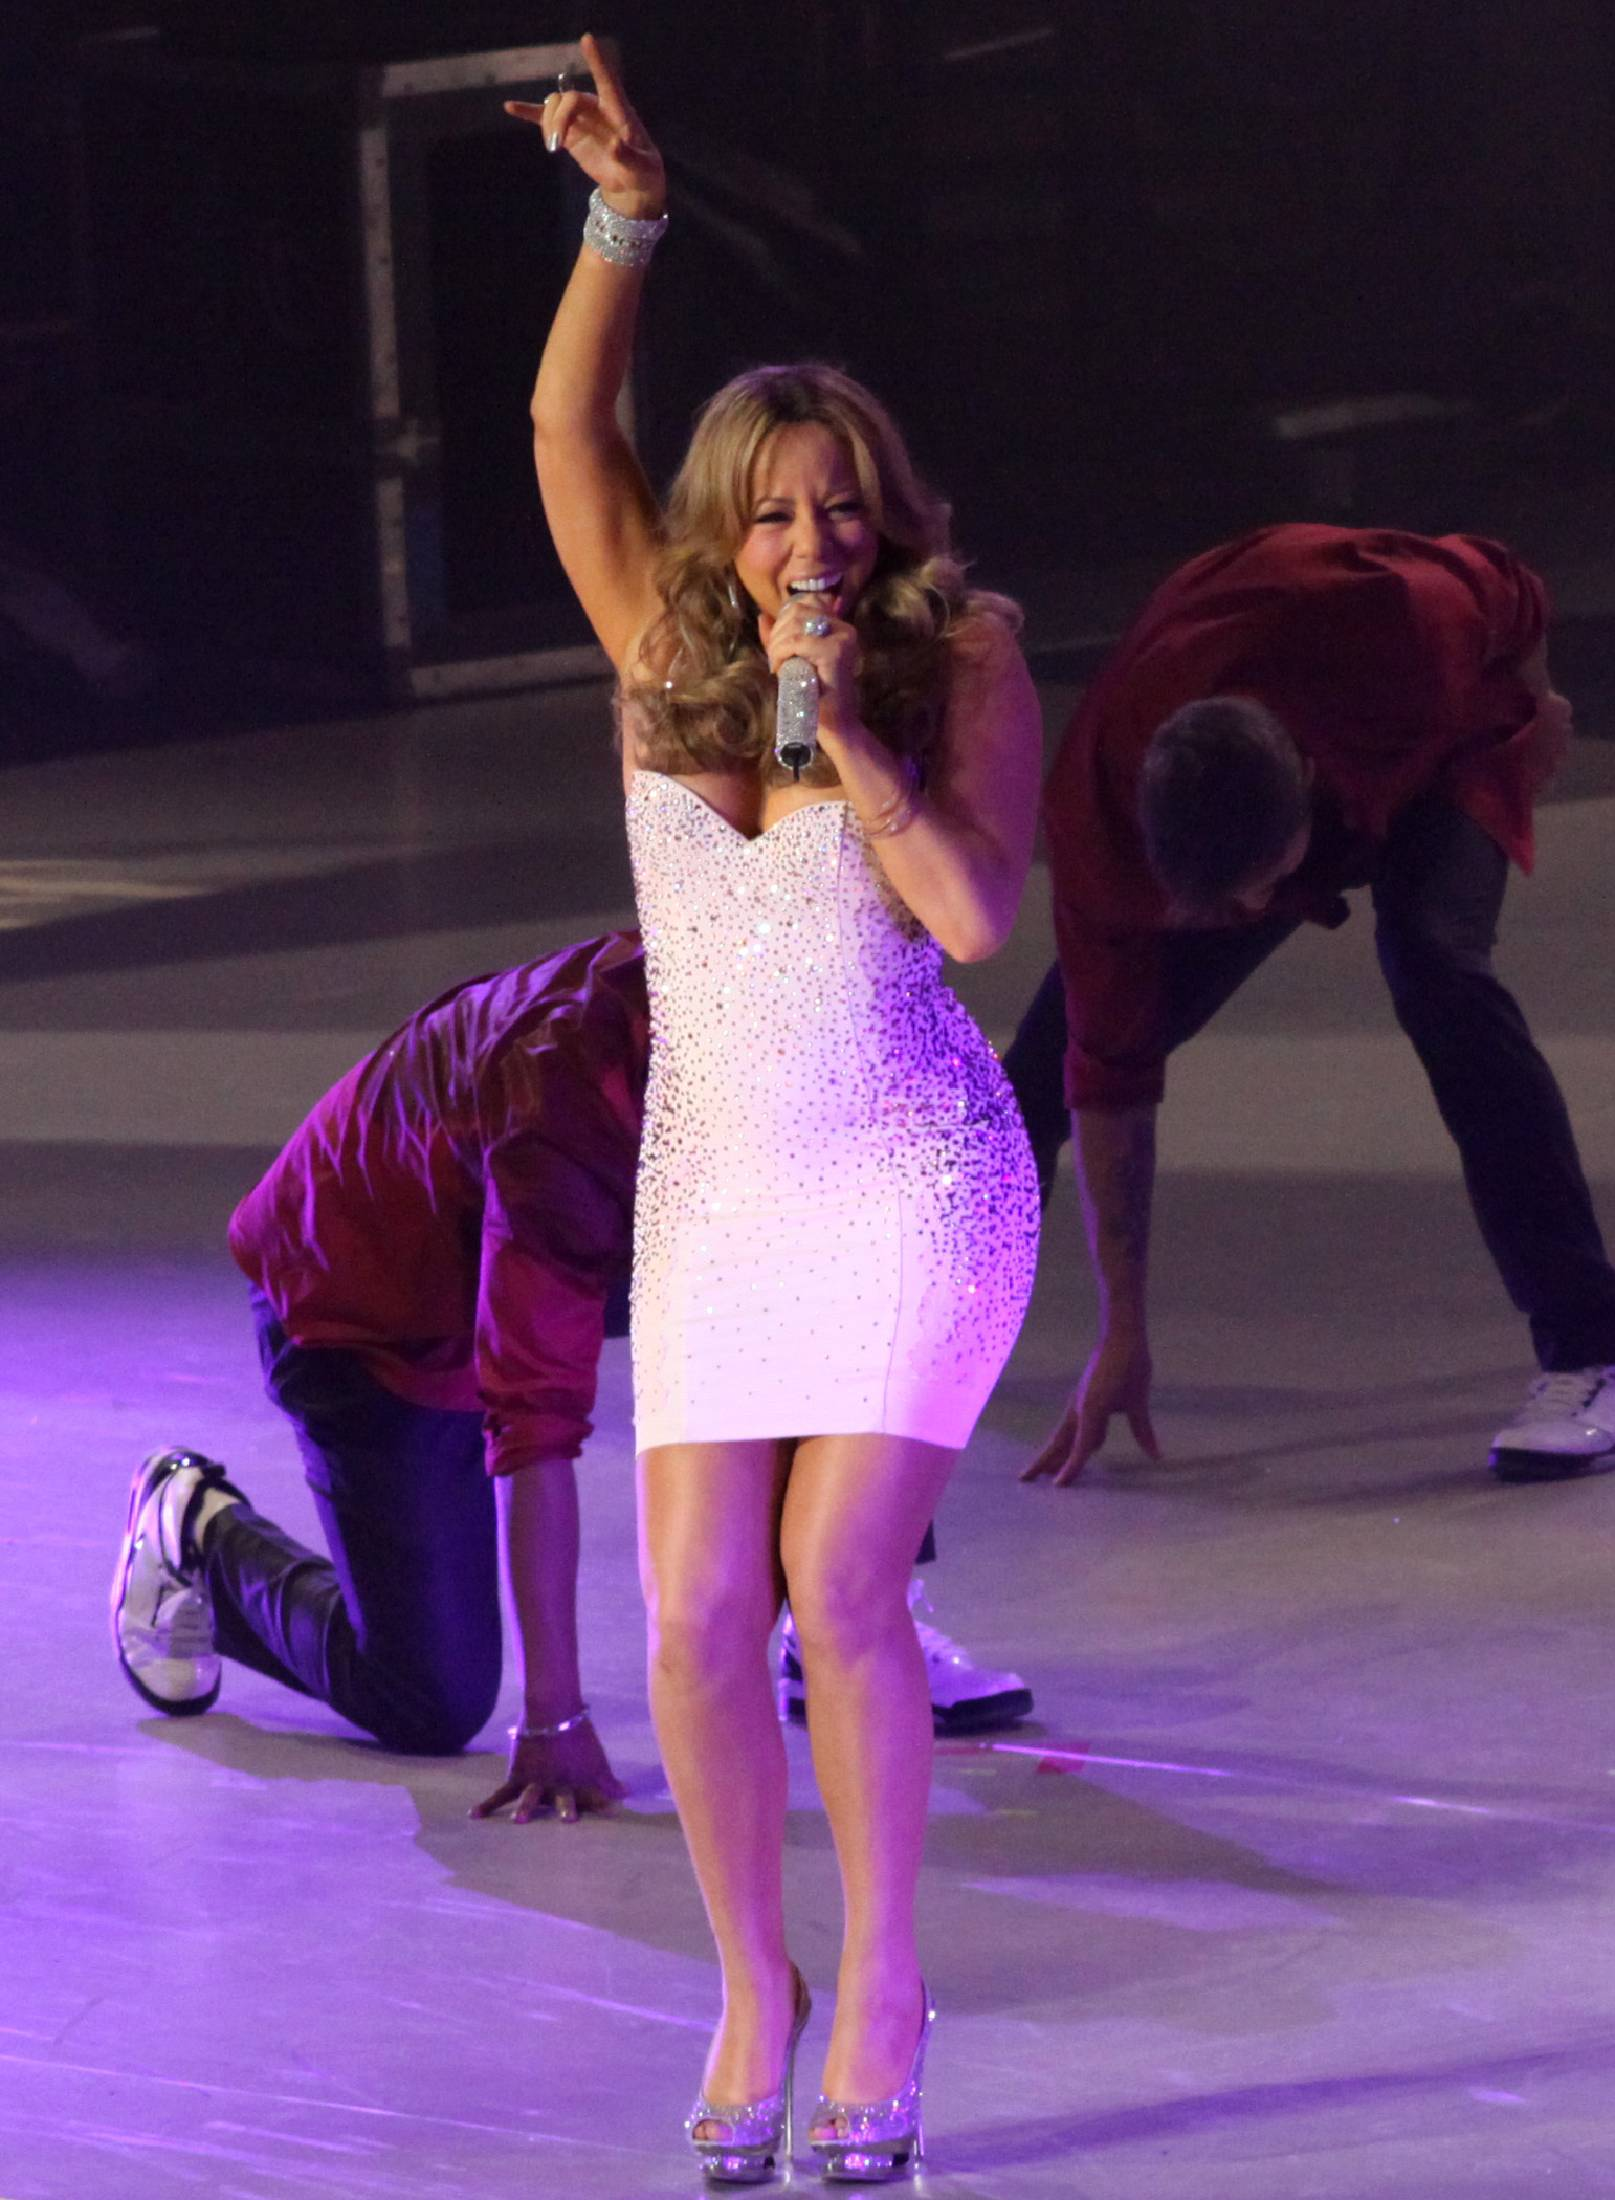 53309_Mariah_Carey_performs_at_Madison_Square_Garden_in_New_York_City-16_122_1074lo.jpg